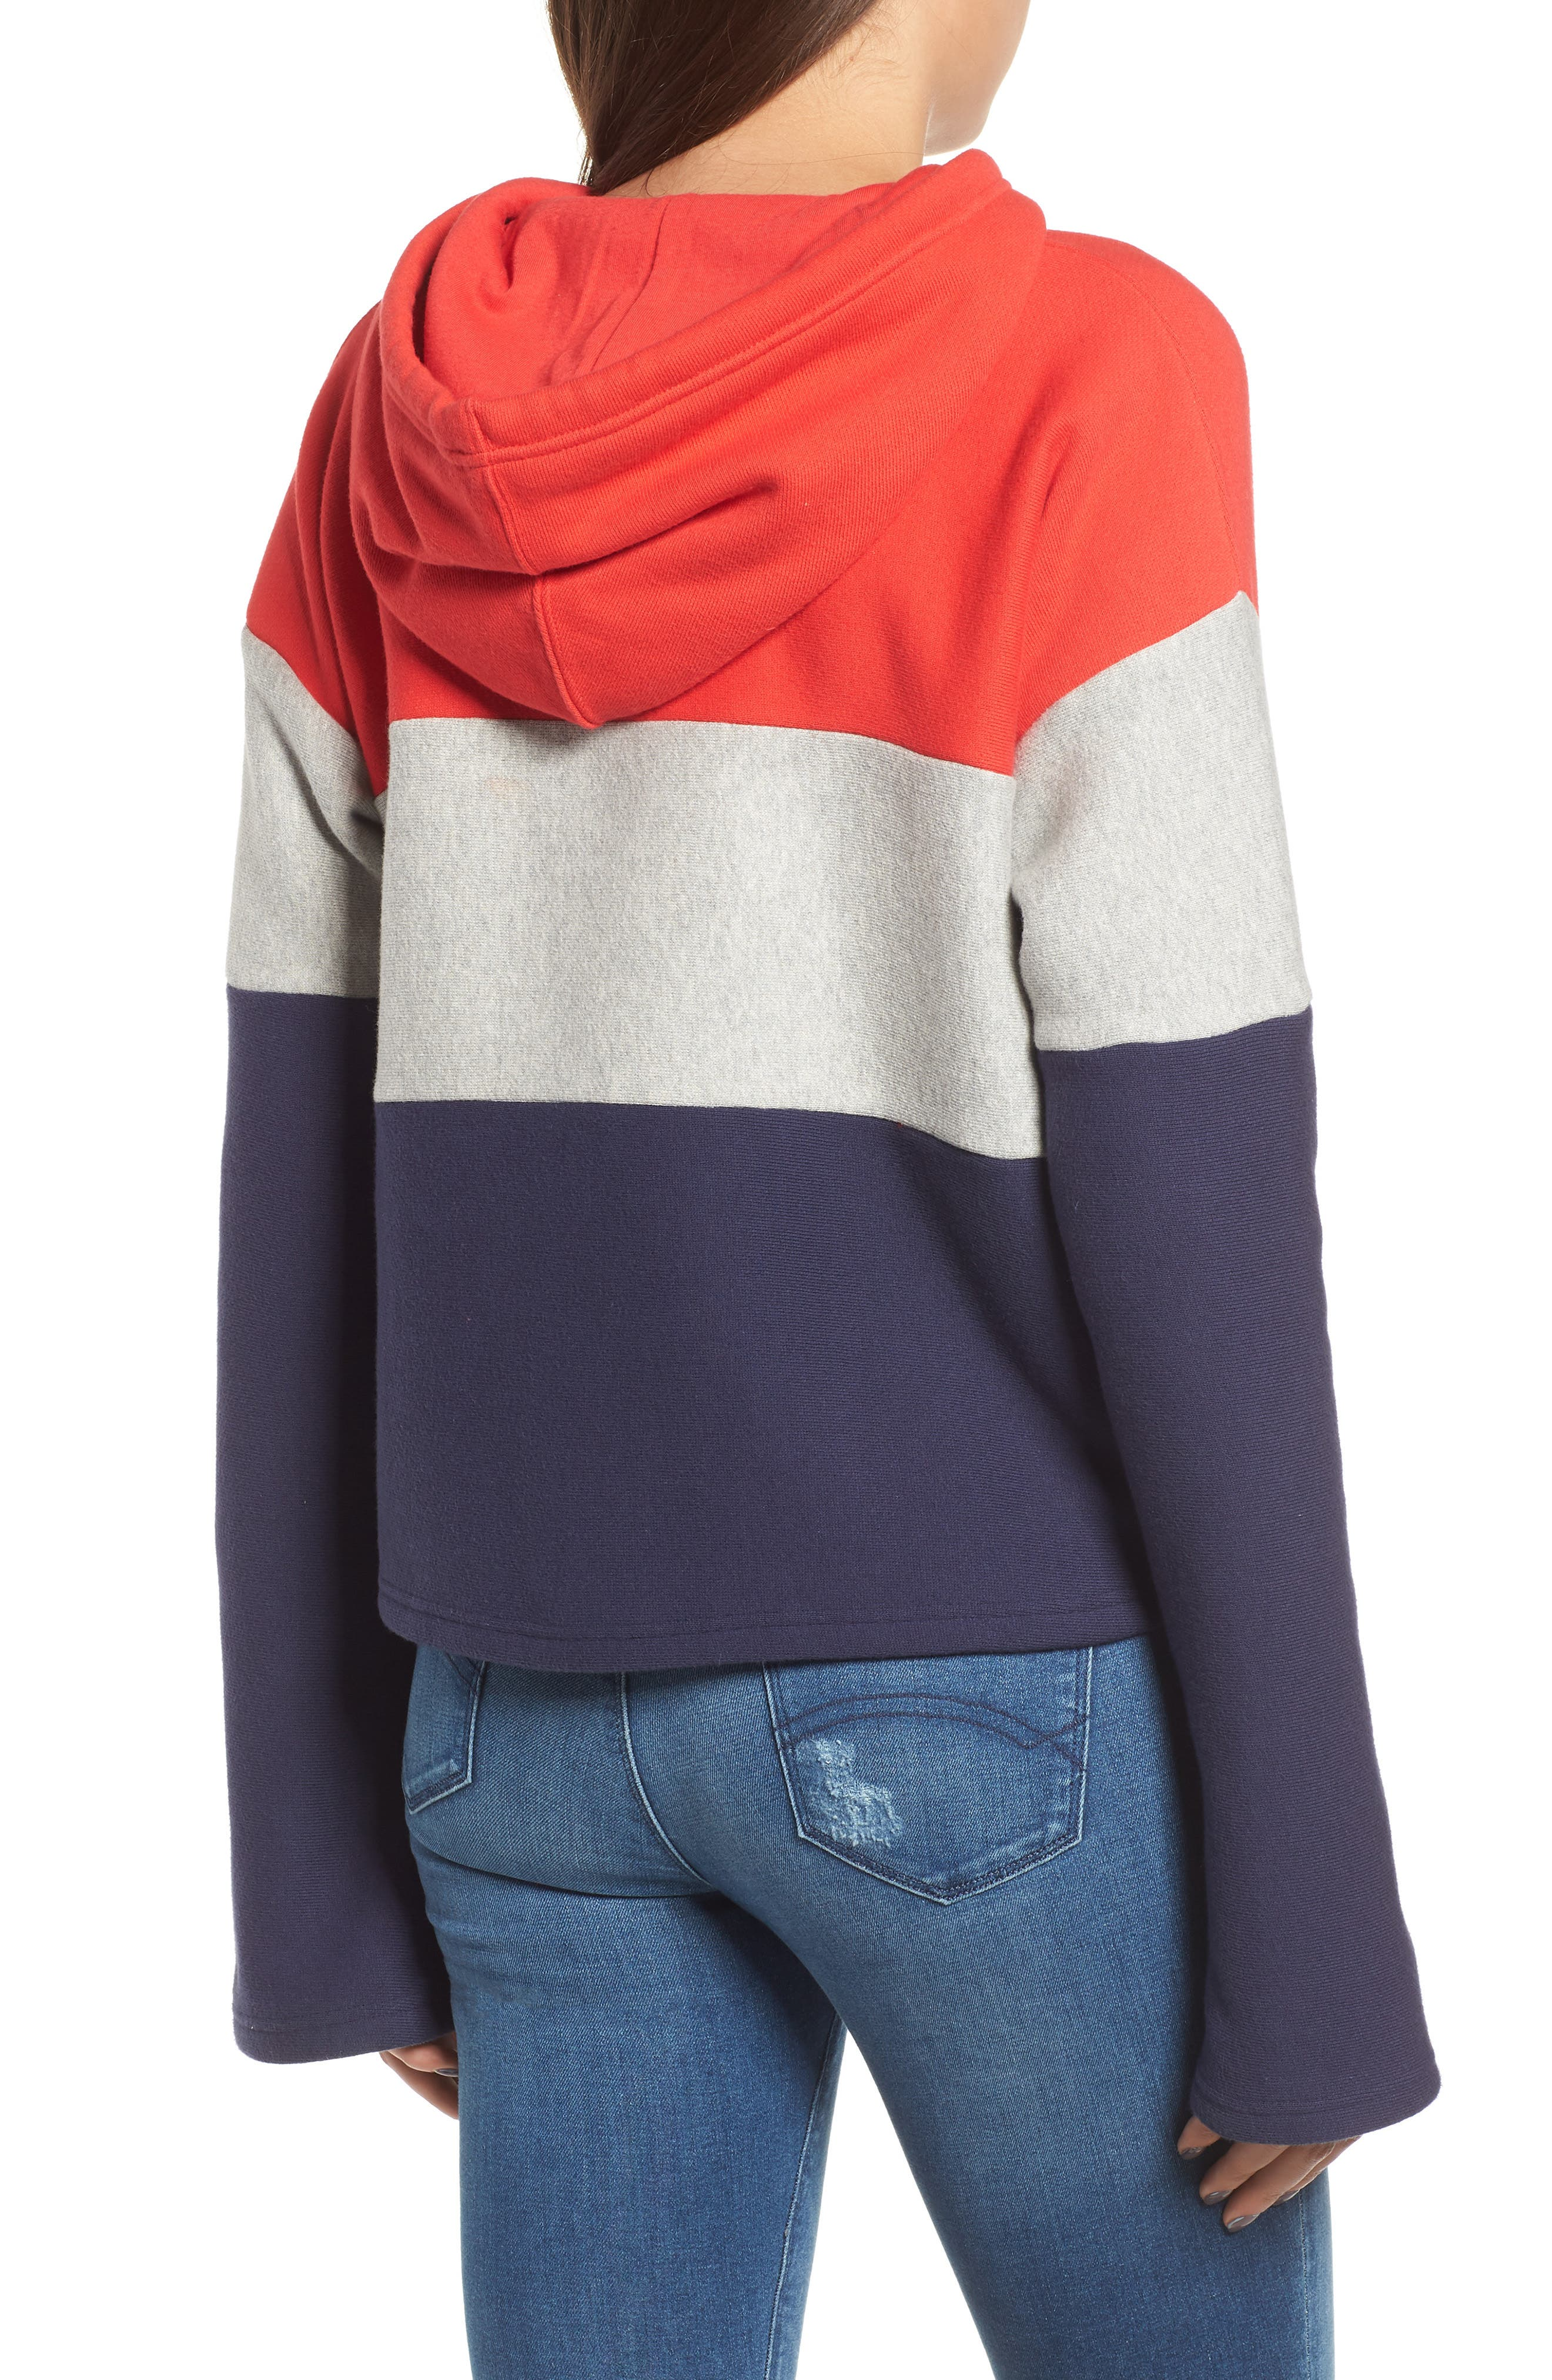 Colorblock Hoodie,                             Alternate thumbnail 2, color,                             RED SPK/ OXFRD GRY/ IMPIND